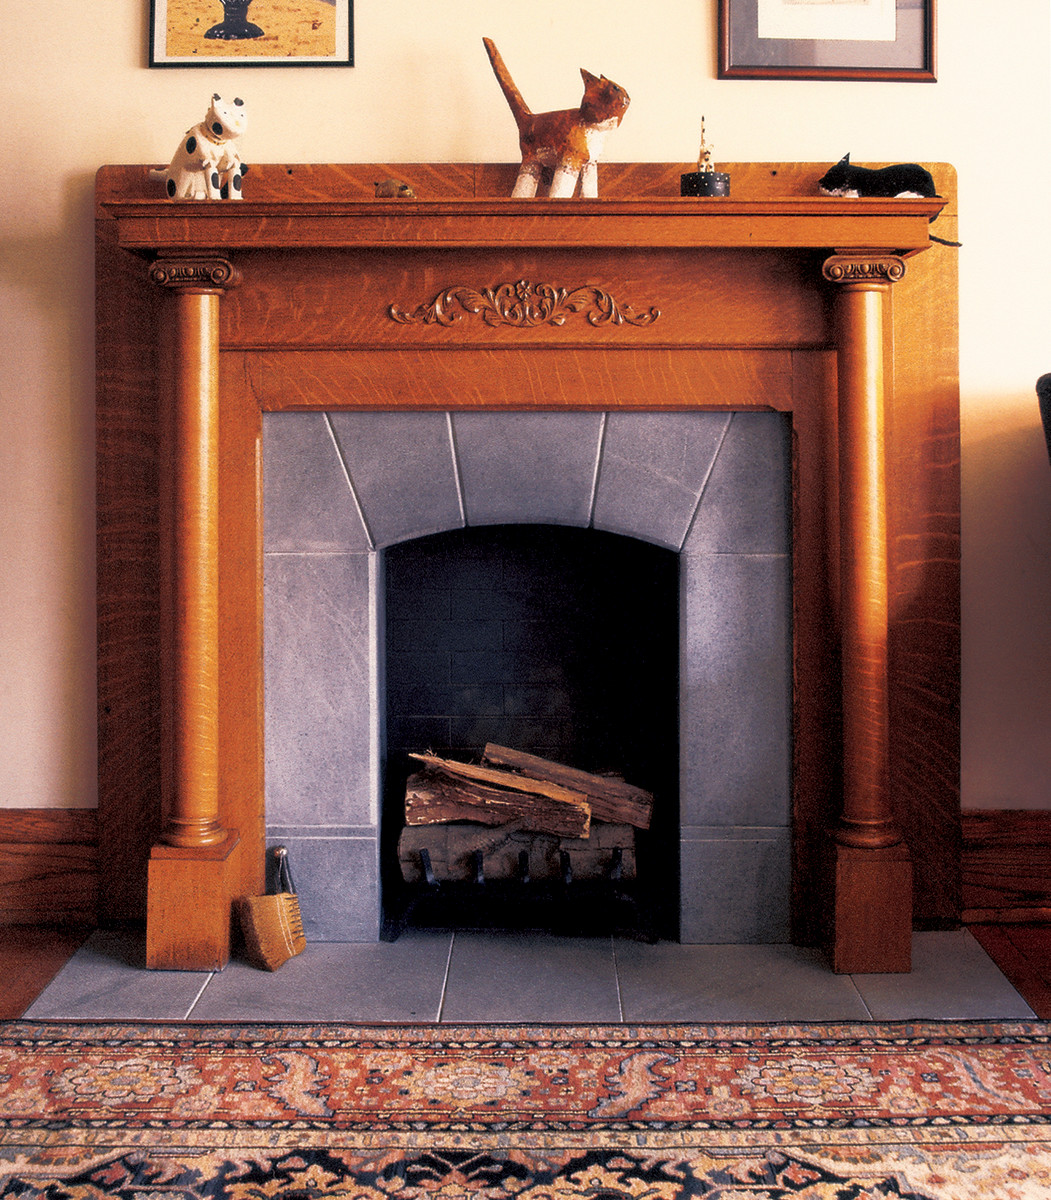 A soapstone fireplace with a gentle sunburst arch, from Vermont Soapstone.